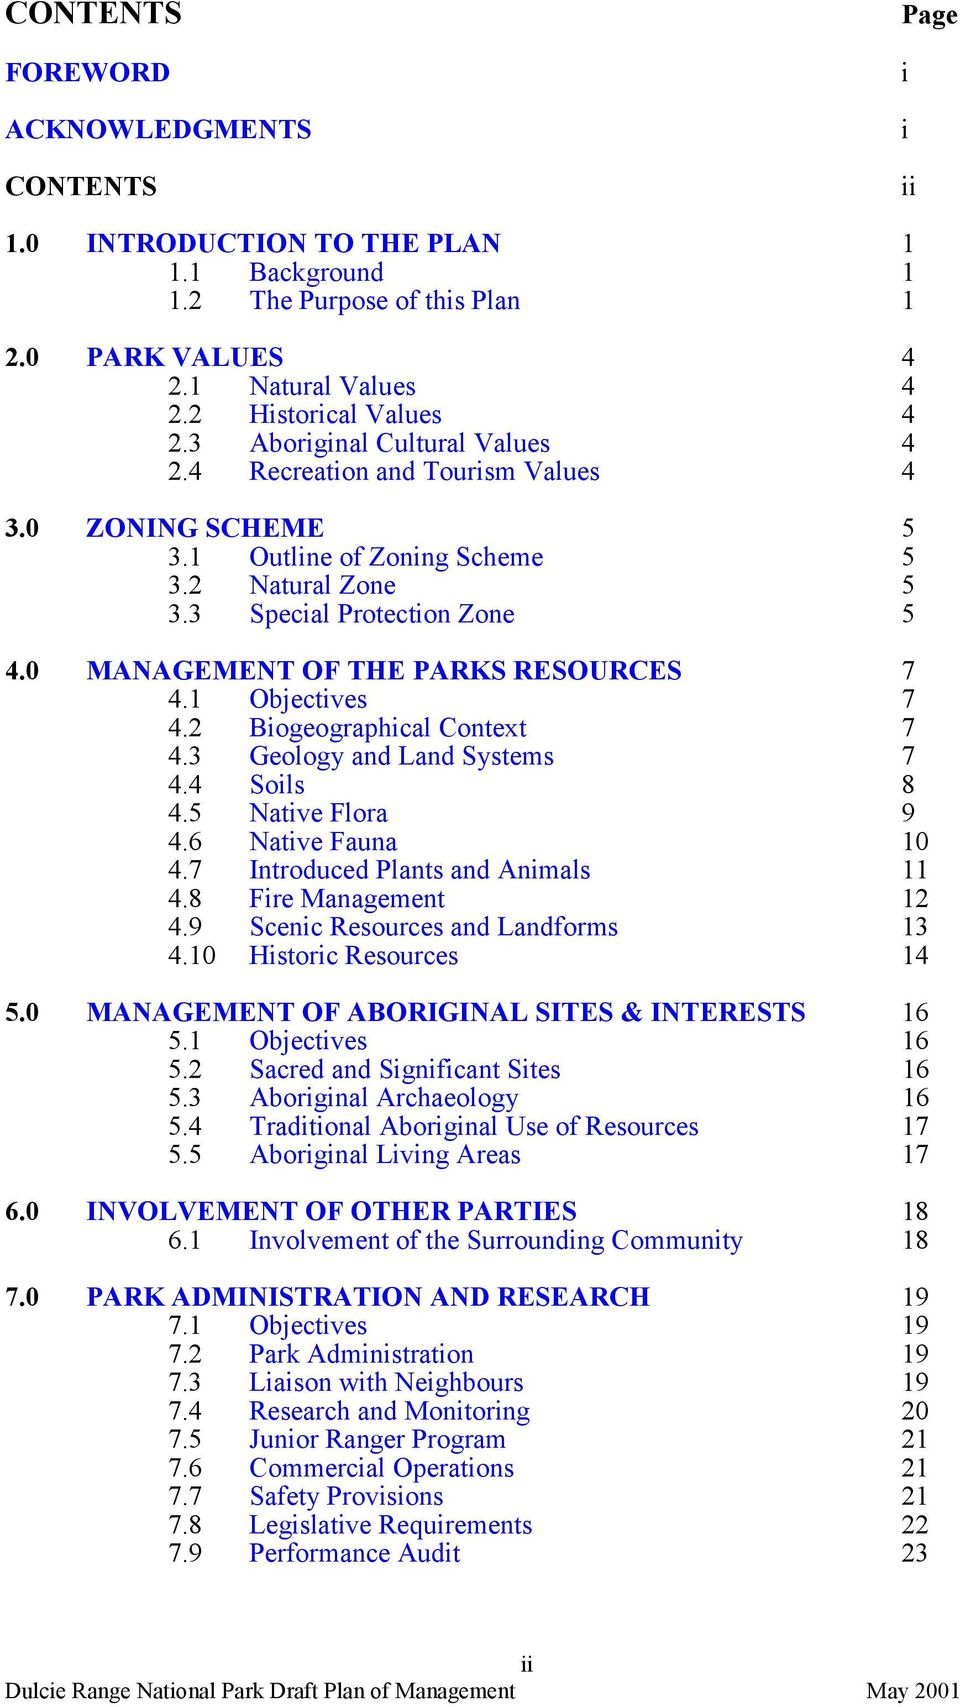 0 MANAGEMENT OF THE PARKS RESOURCES 7 4.1 Objectives 7 4.2 Biogeographical Context 7 4.3 Geology and Land Systems 7 4.4 Soils 8 4.5 Native Flora 9 4.6 Native Fauna 10 4.